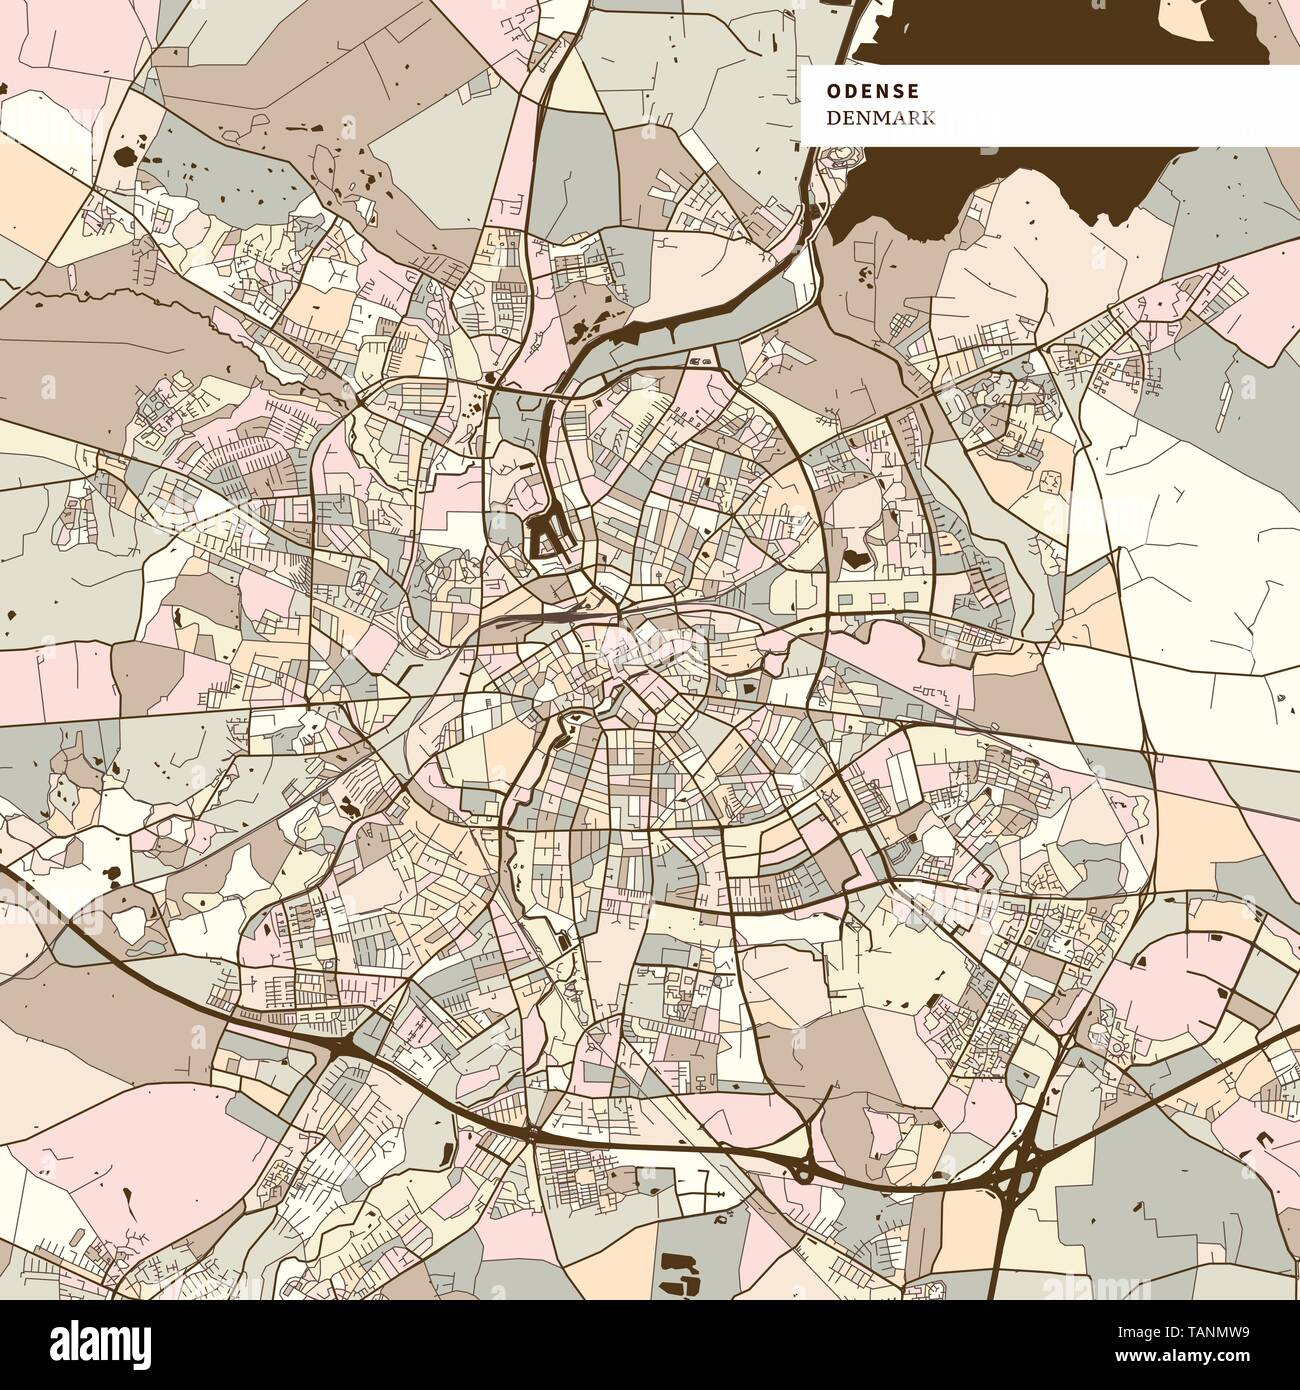 Image of: Odense Vector Map High Resolution Stock Photography And Images Alamy